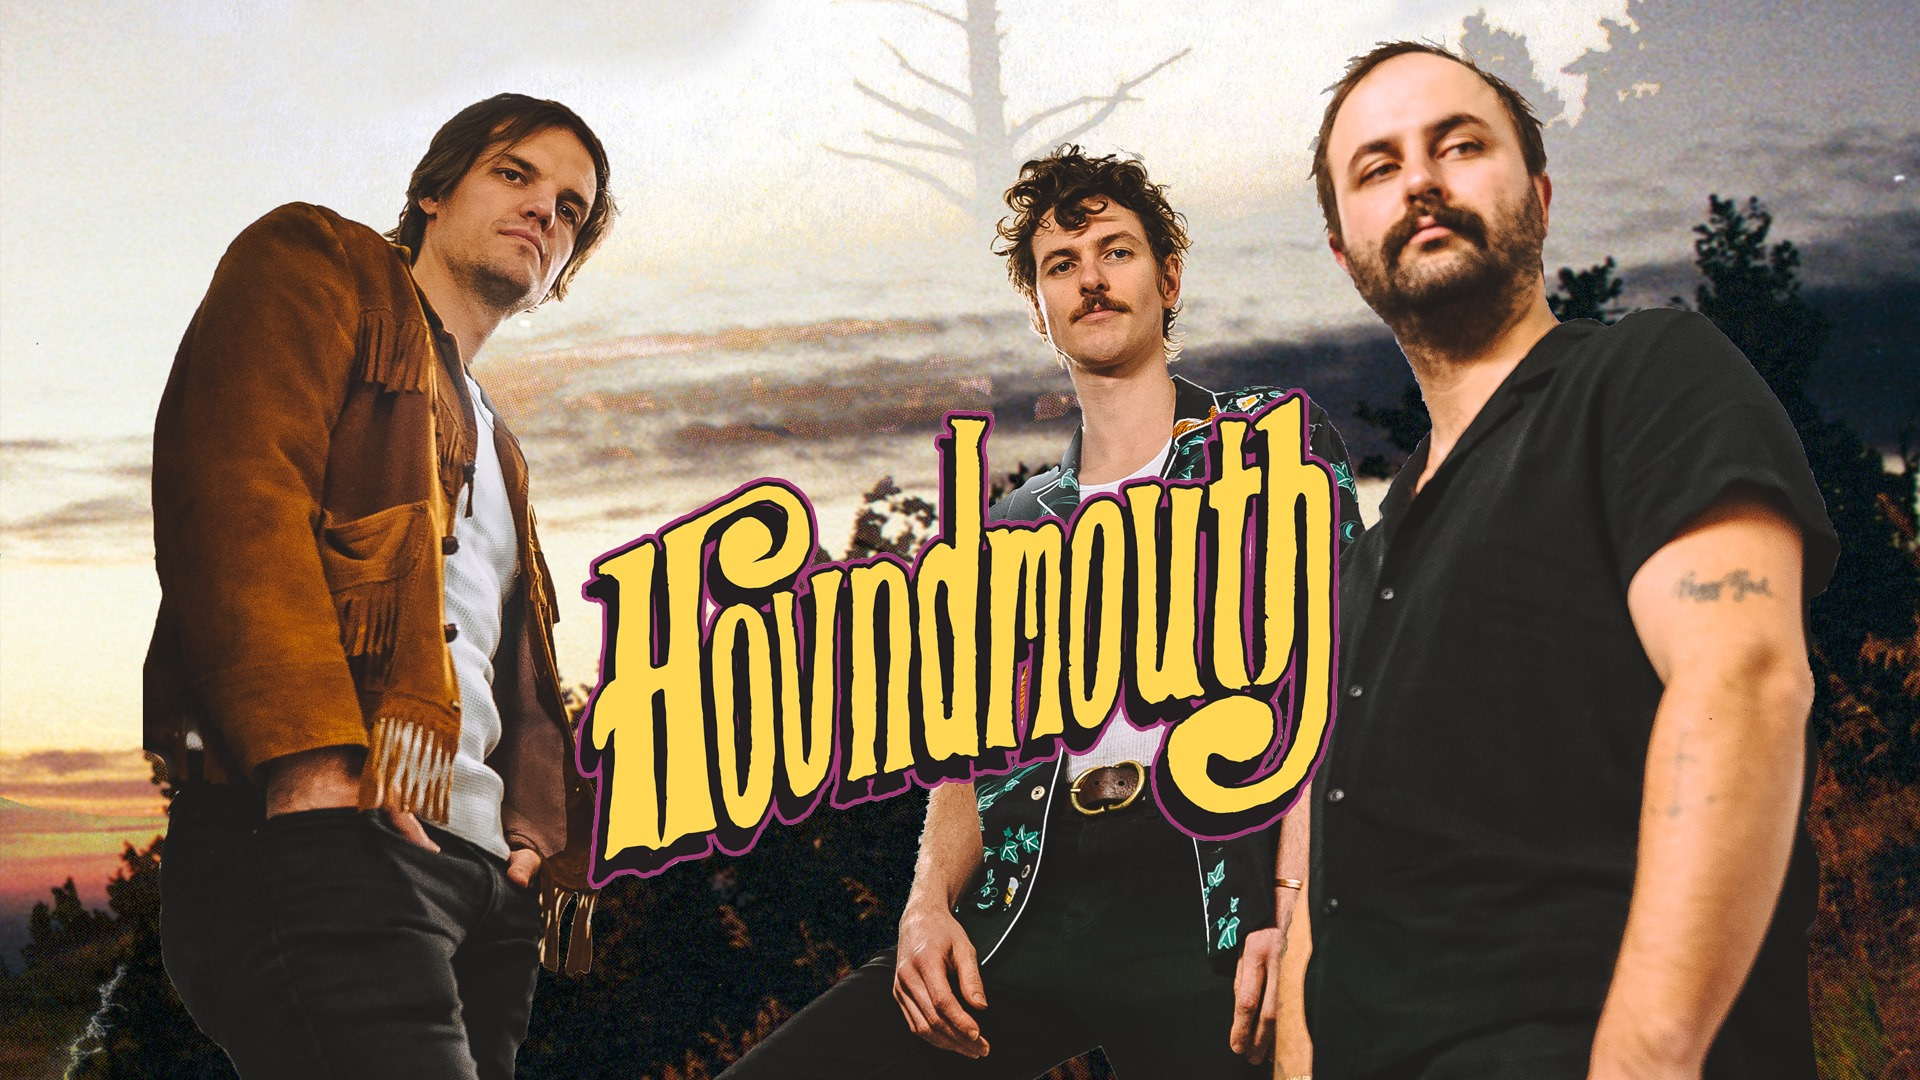 Houndsmouth